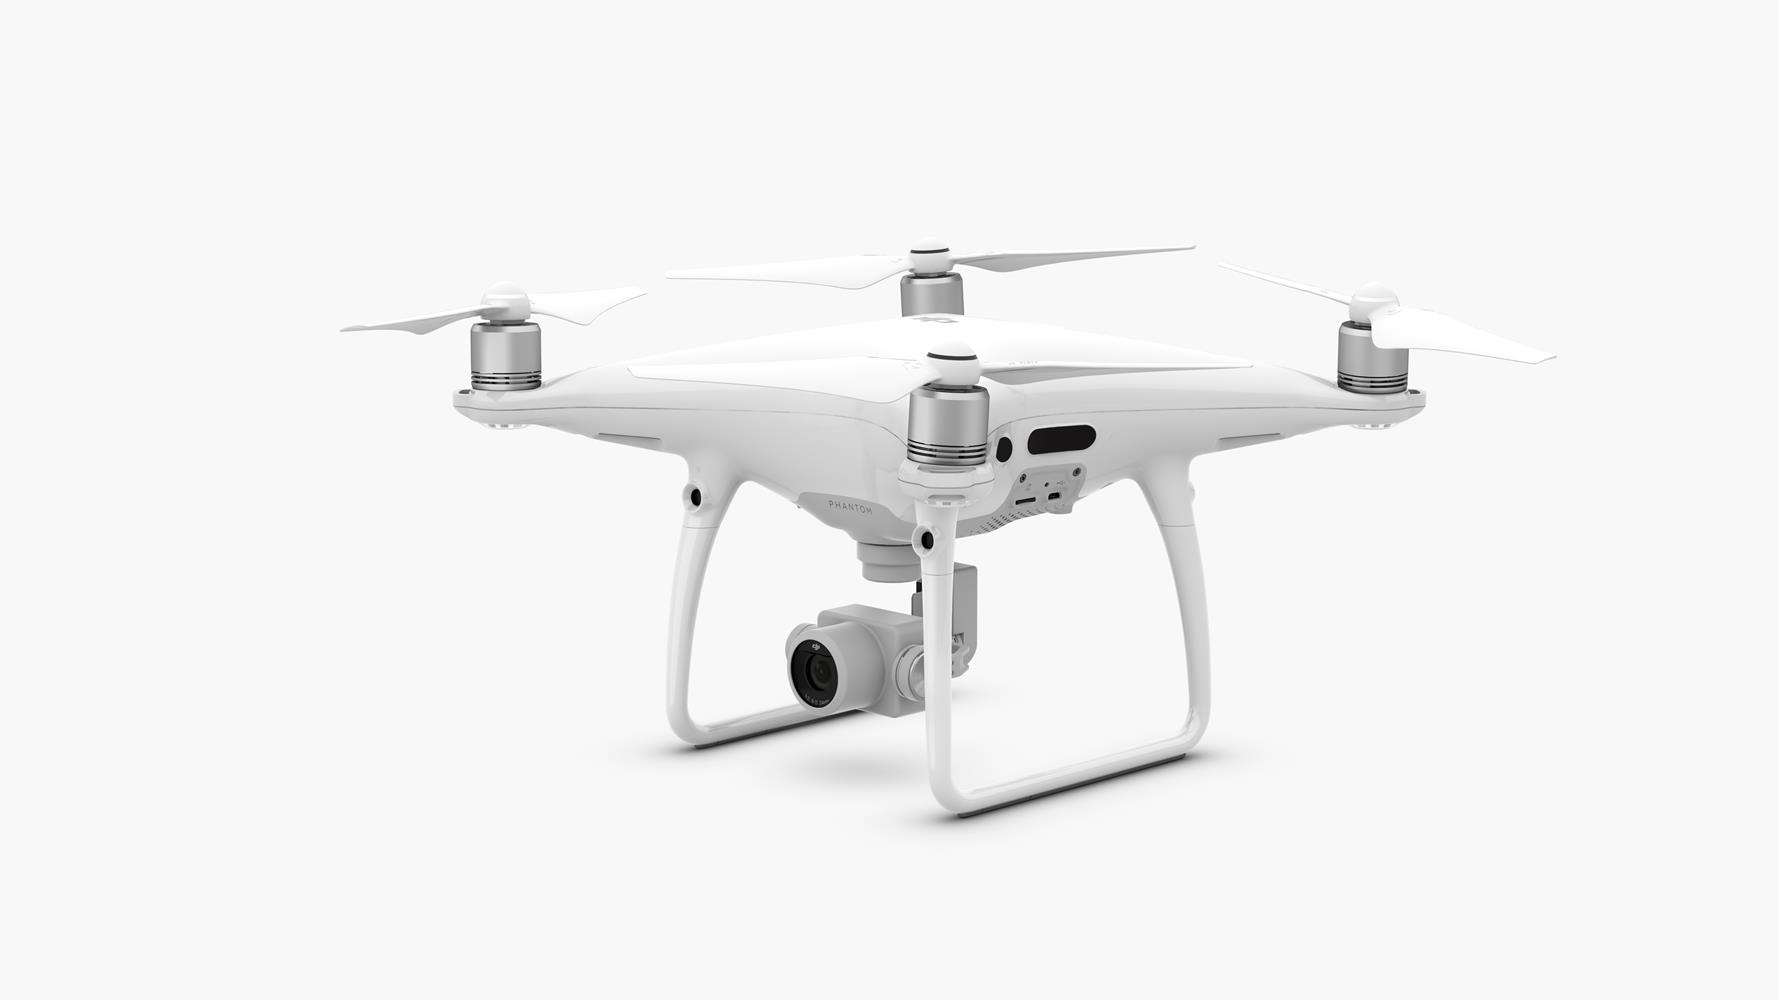 Henrys.com : DJI PHANTOM 4 PRO DRONE - Won't Be Beat On Price